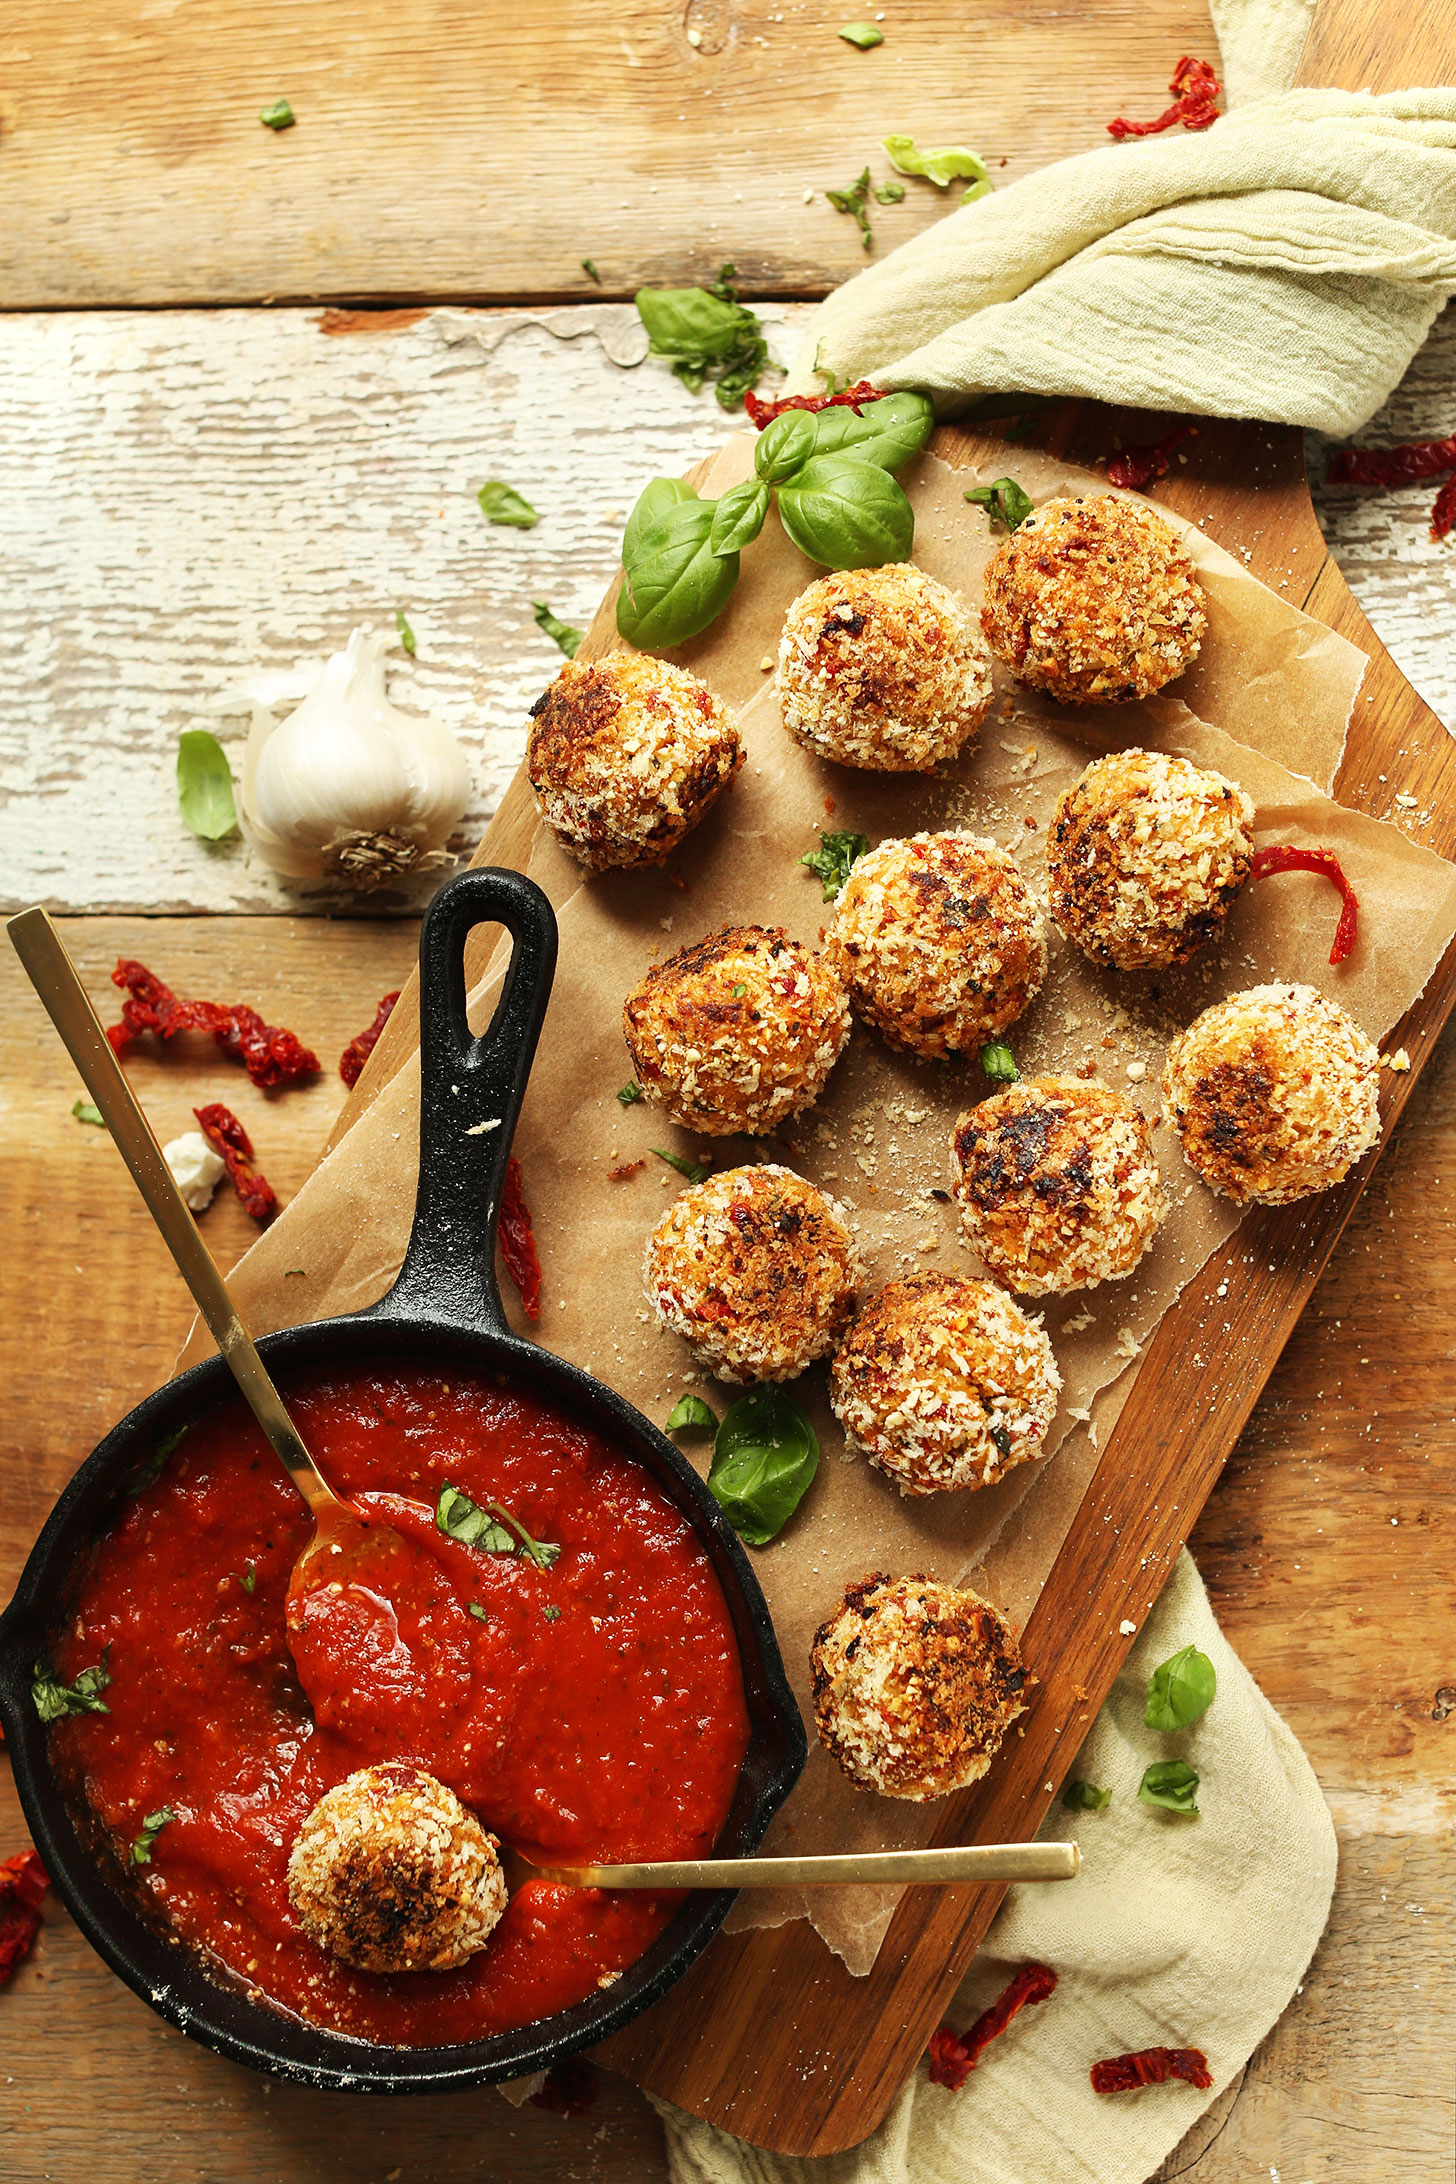 Platter of our healthy Vegan Arancini with a cast-iron skillet of warm marinara